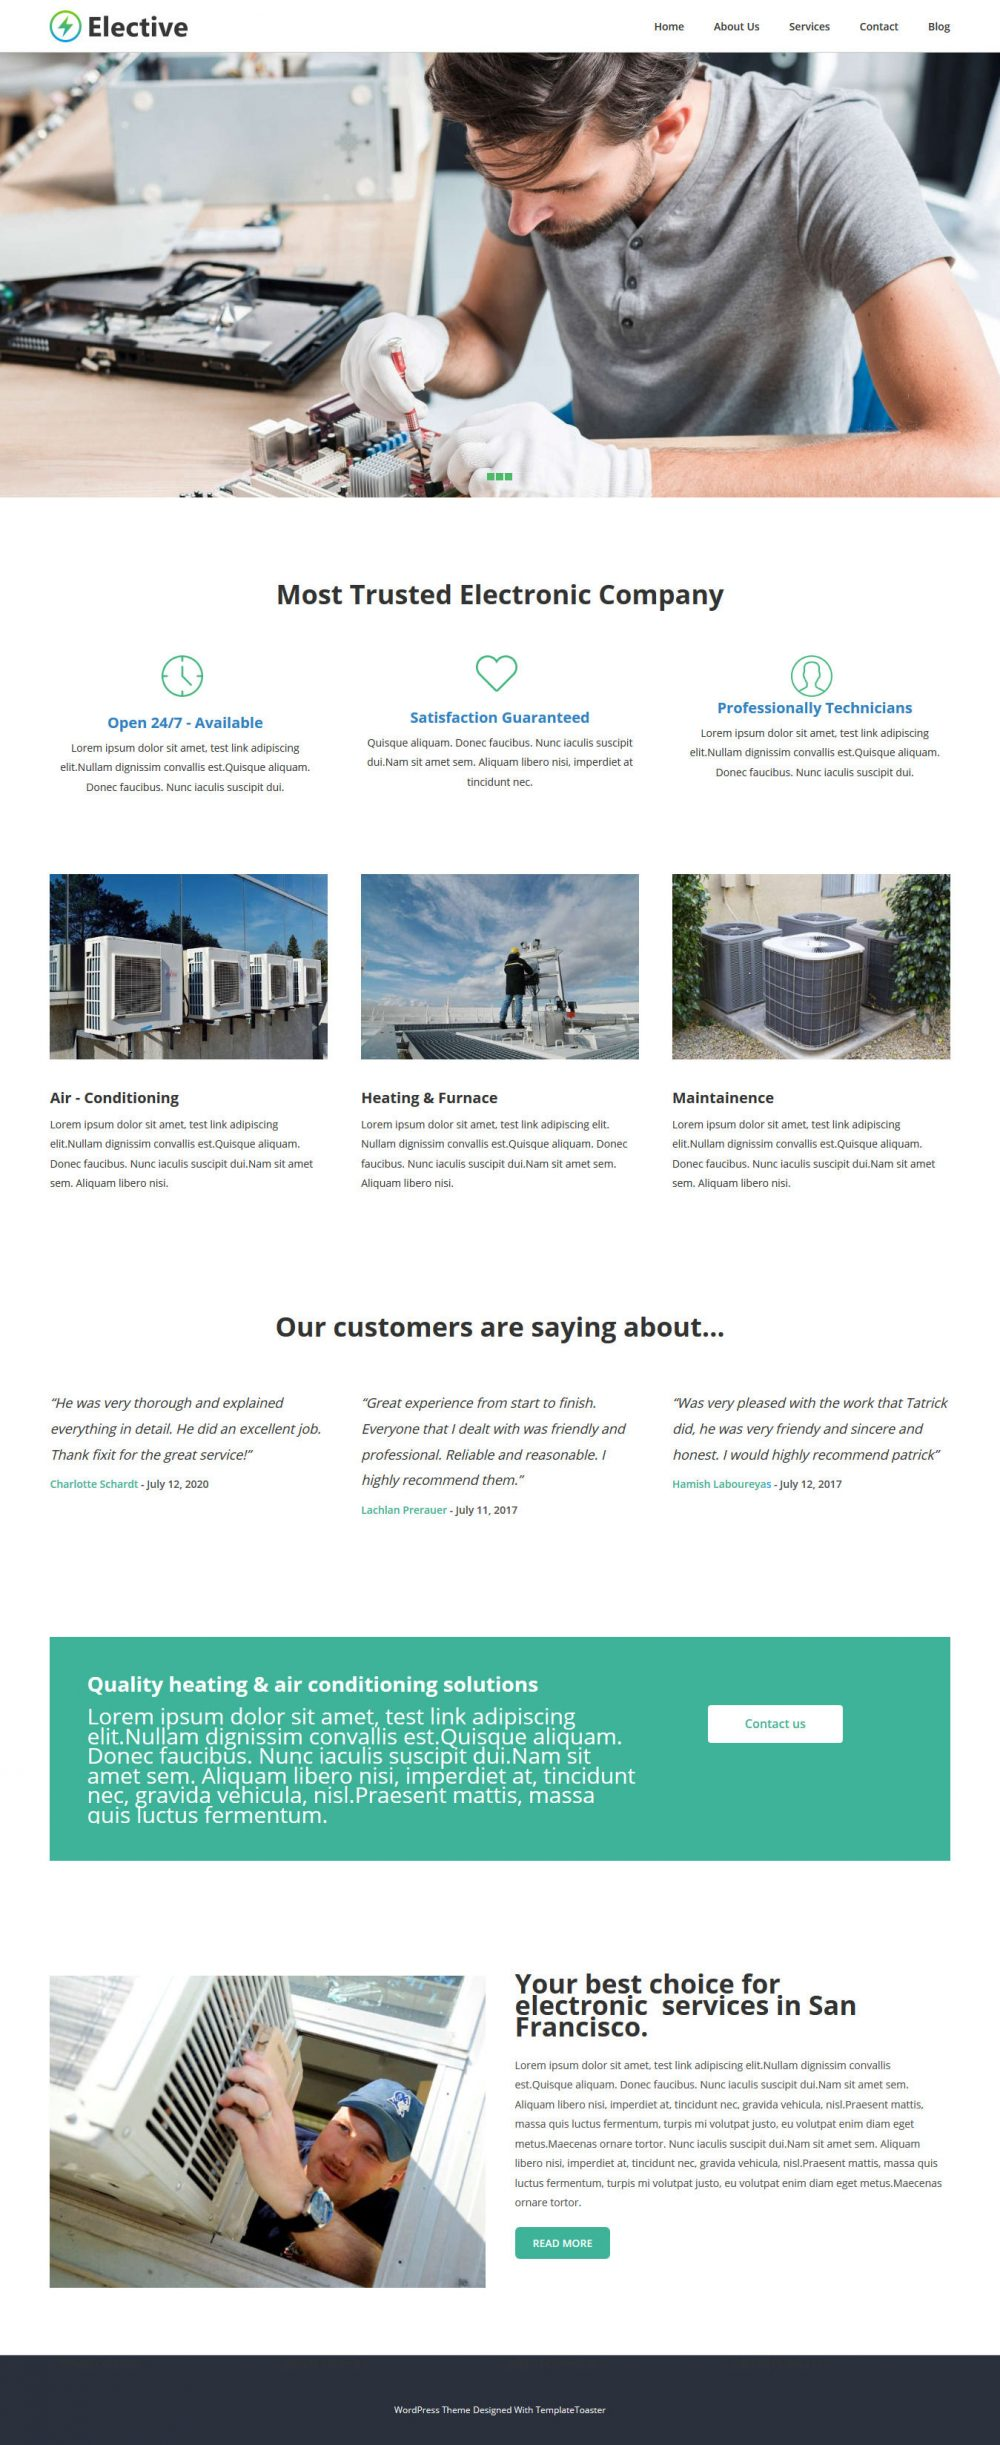 Elective Electronic Repair Service HTML Template